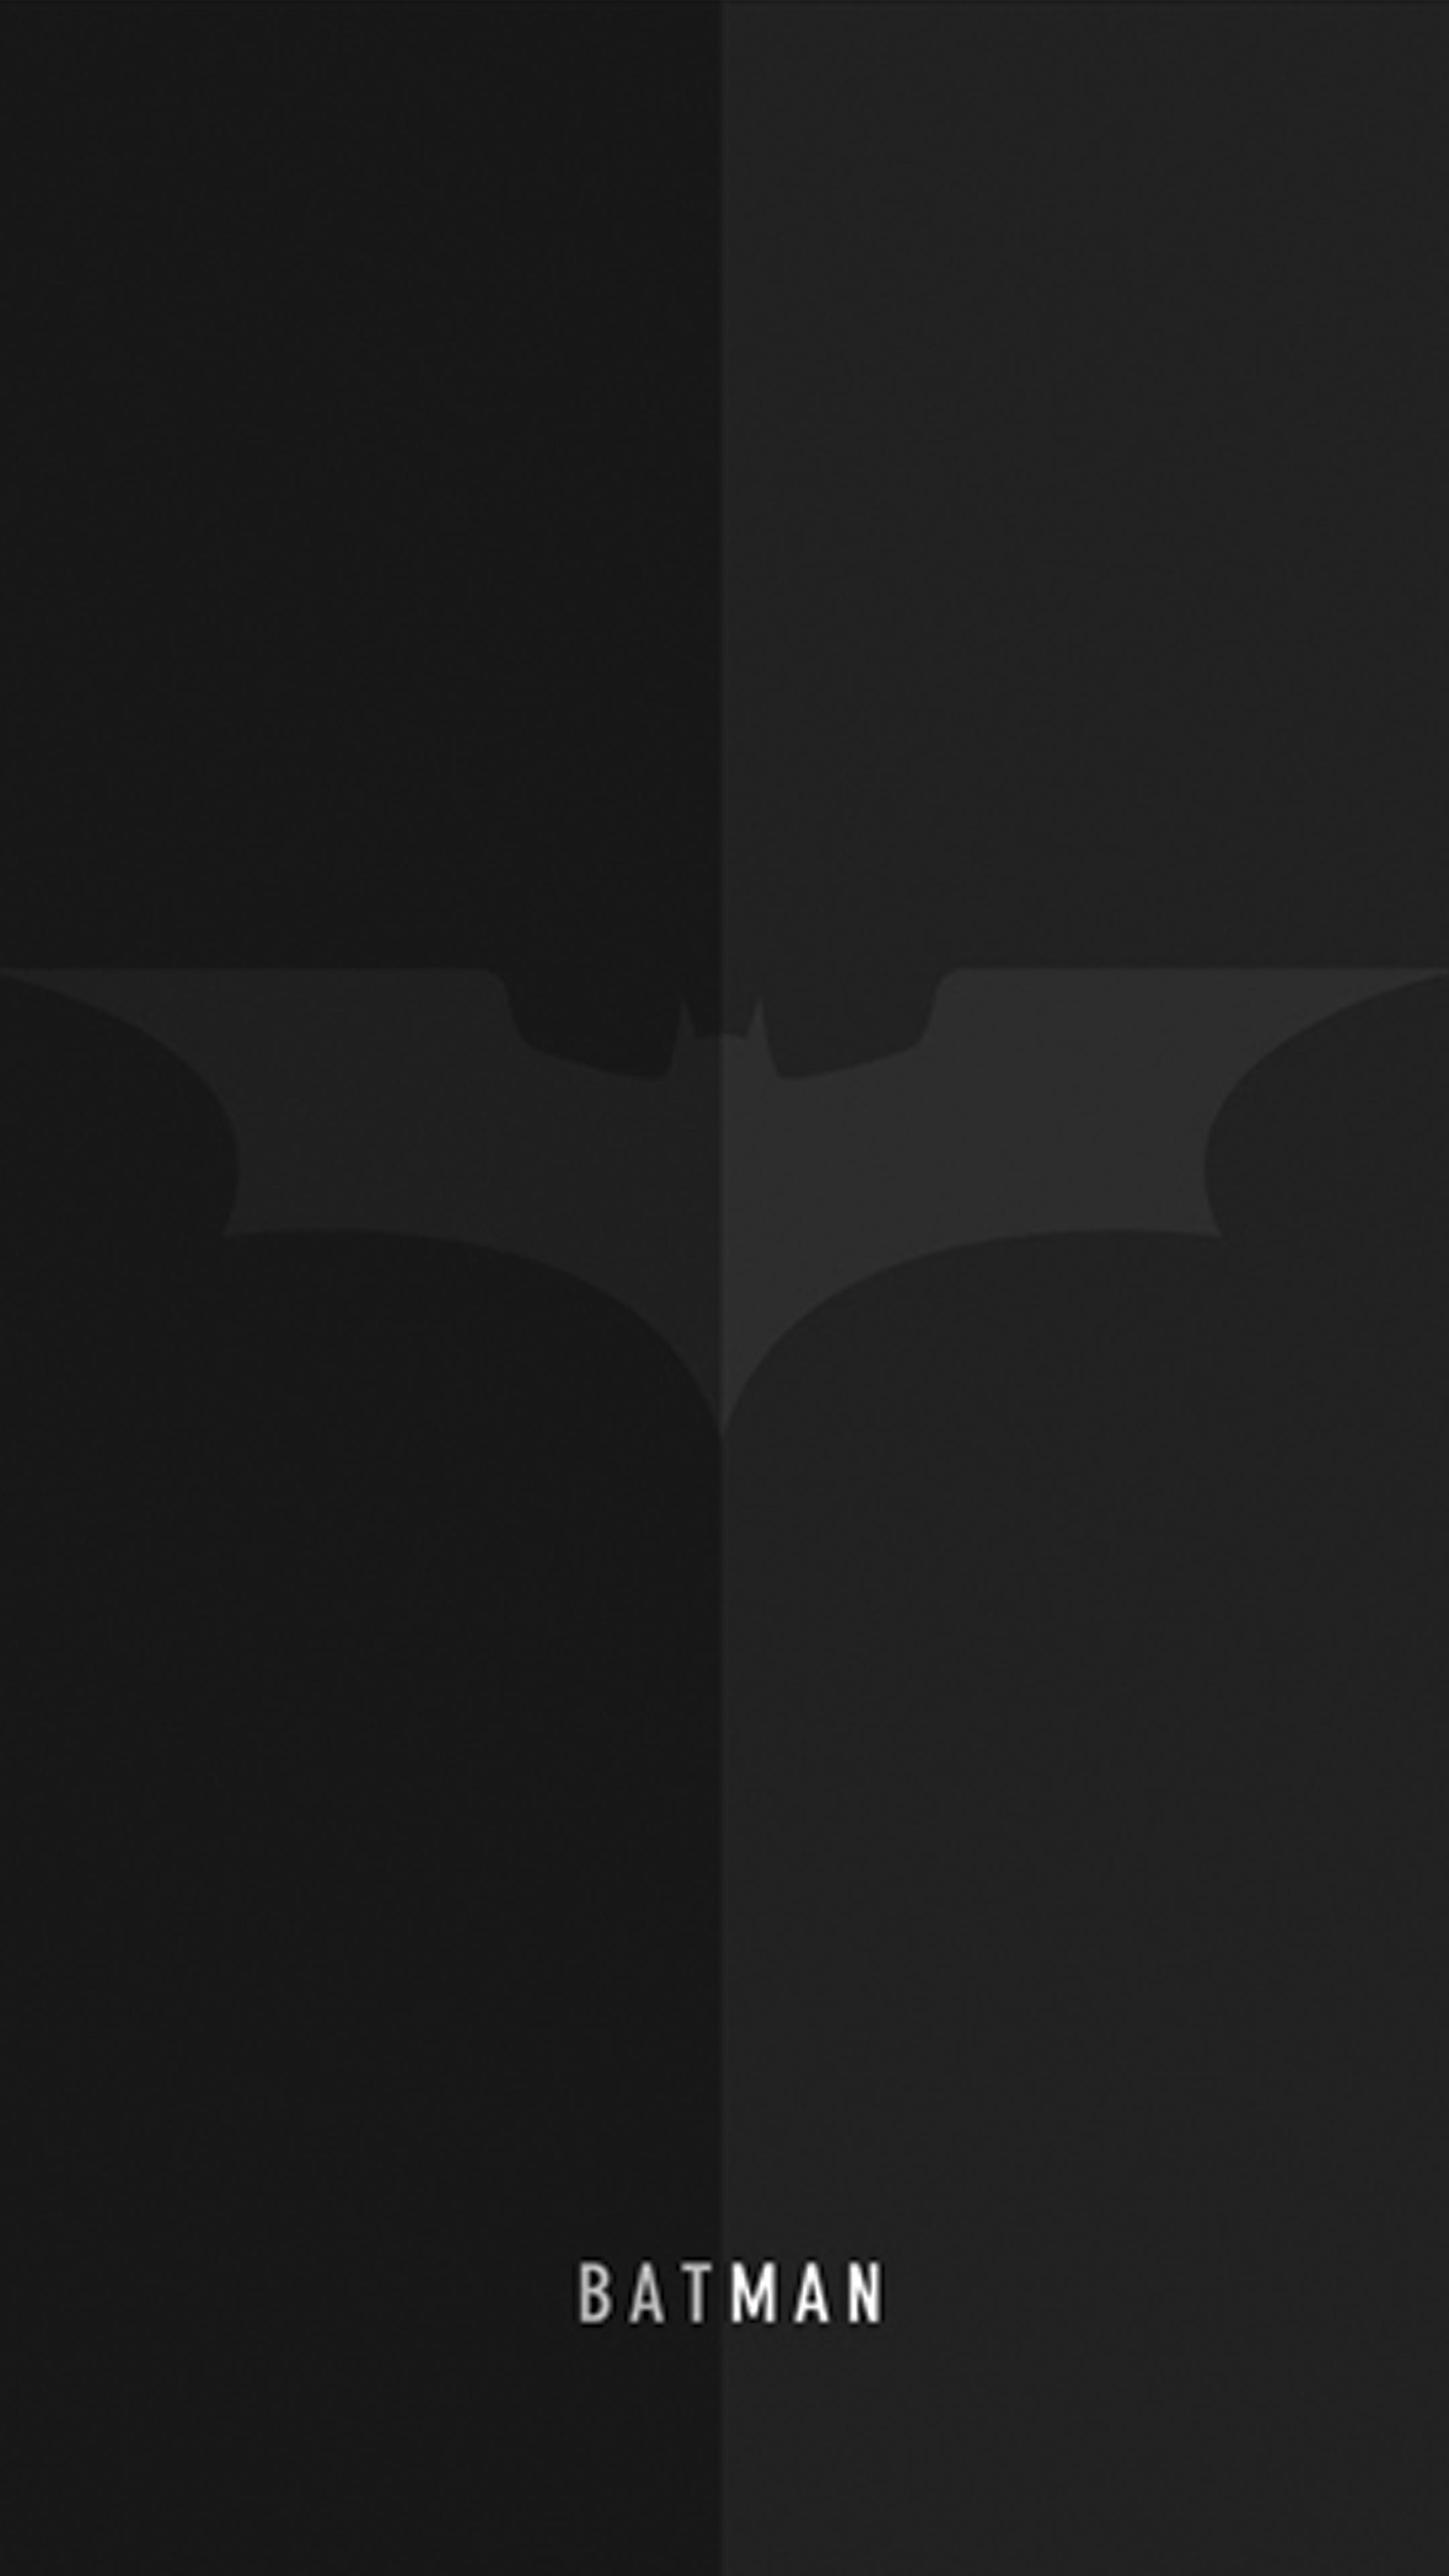 batman mobile wallpaper | miniwallist